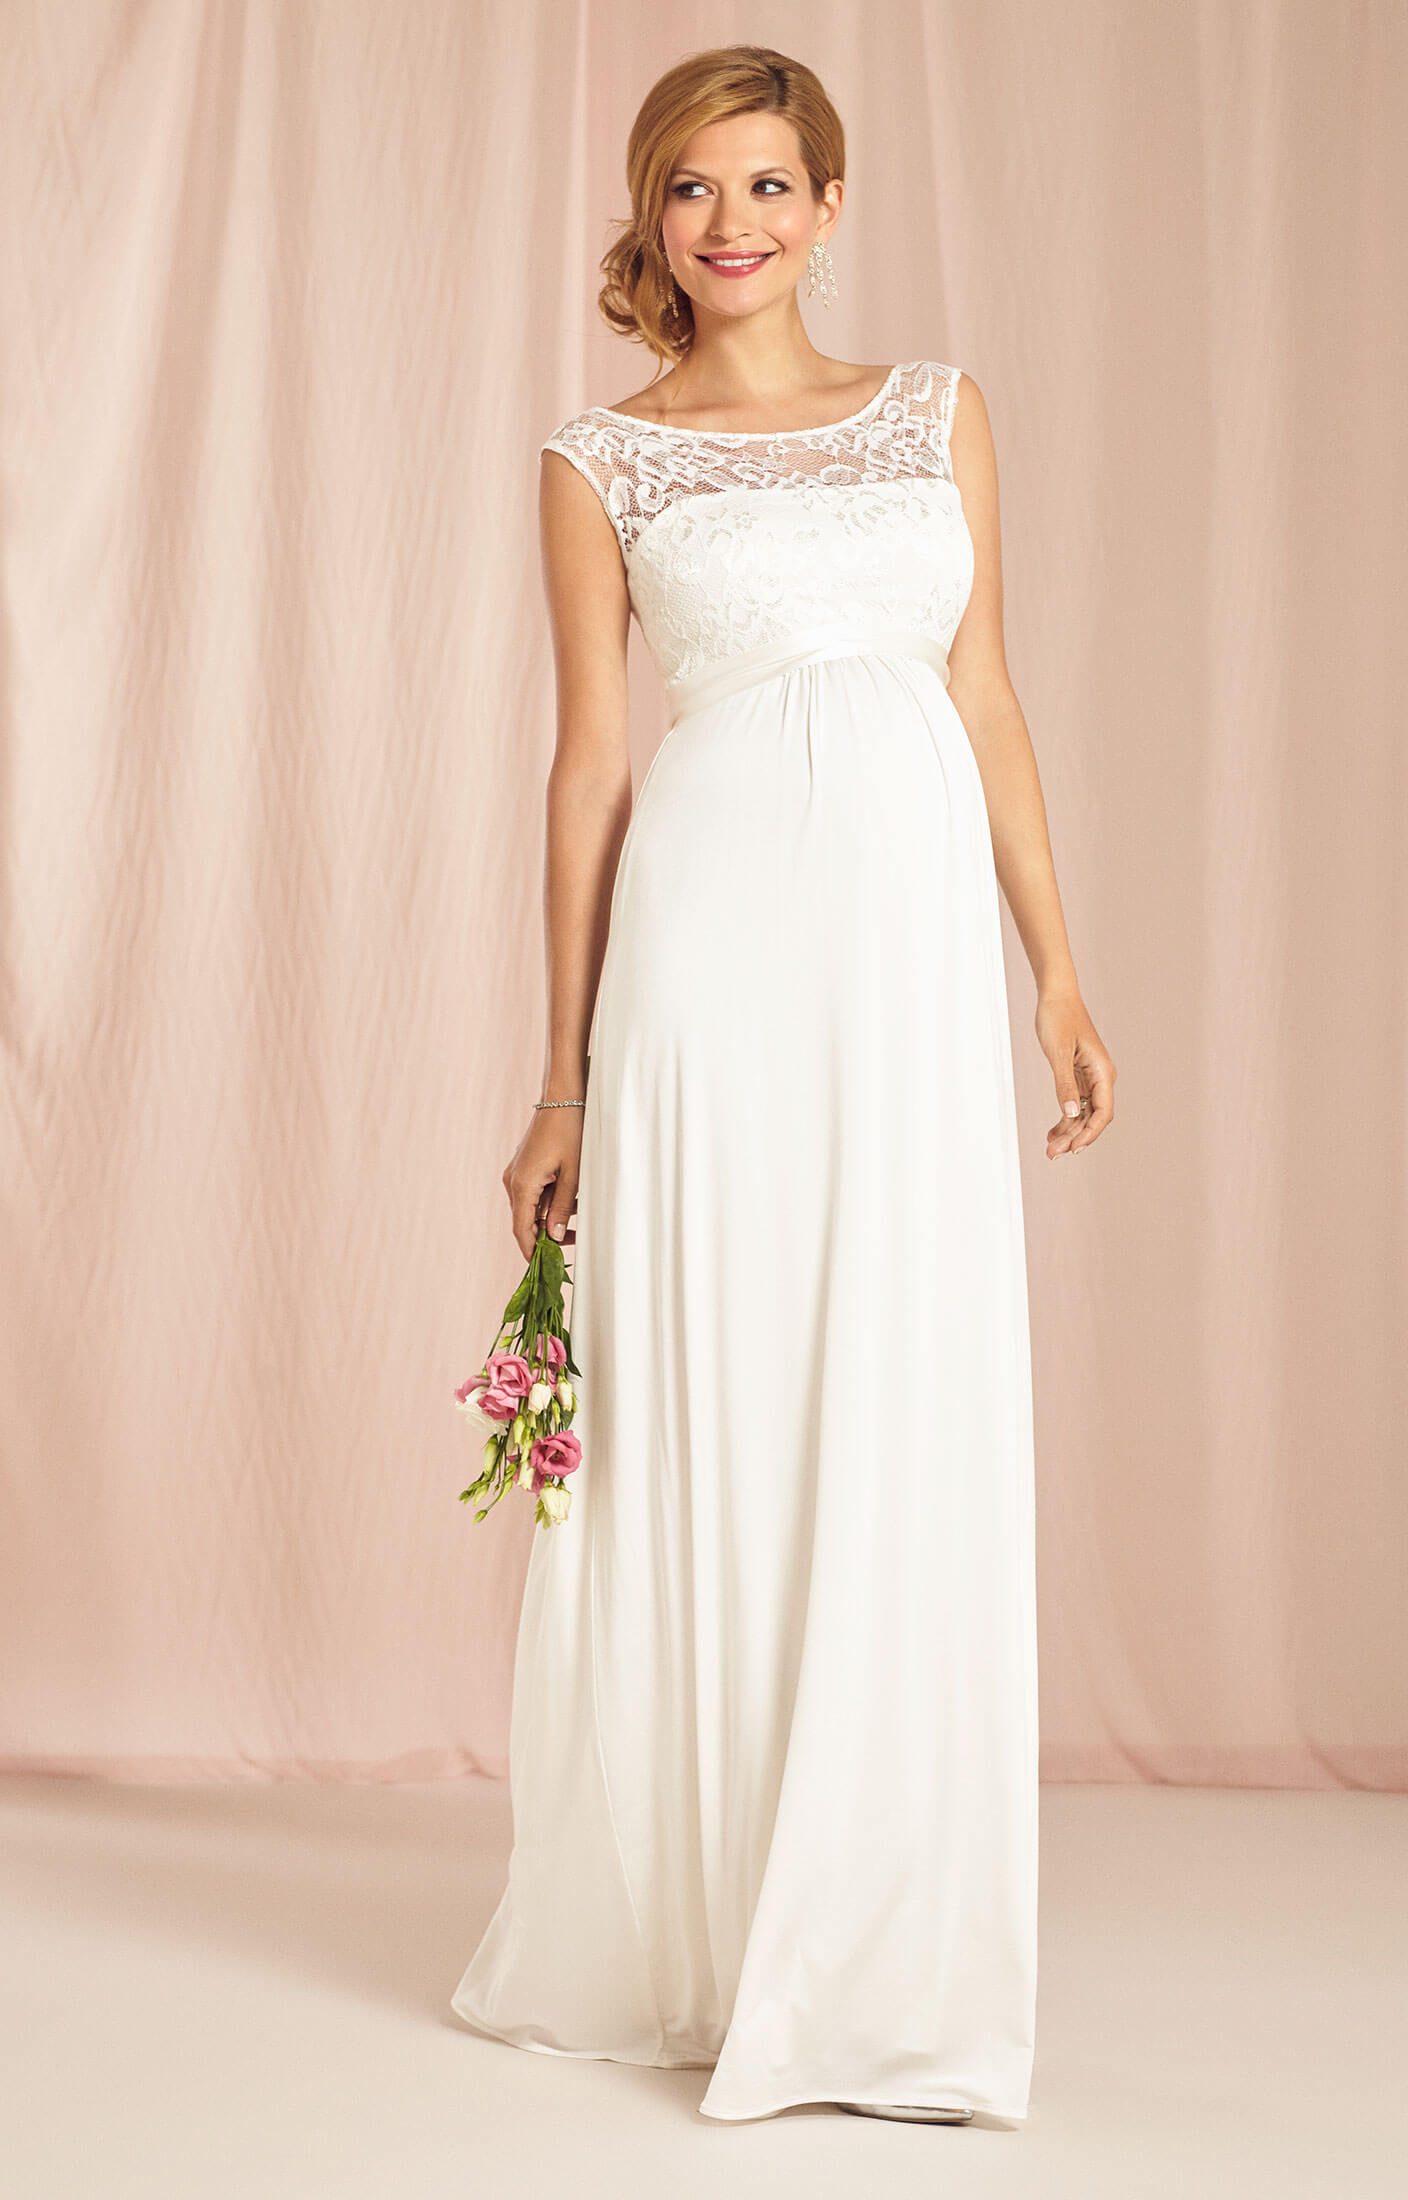 Valencia maternity wedding gown ivory maternity wedding for Maternity dresses for wedding party